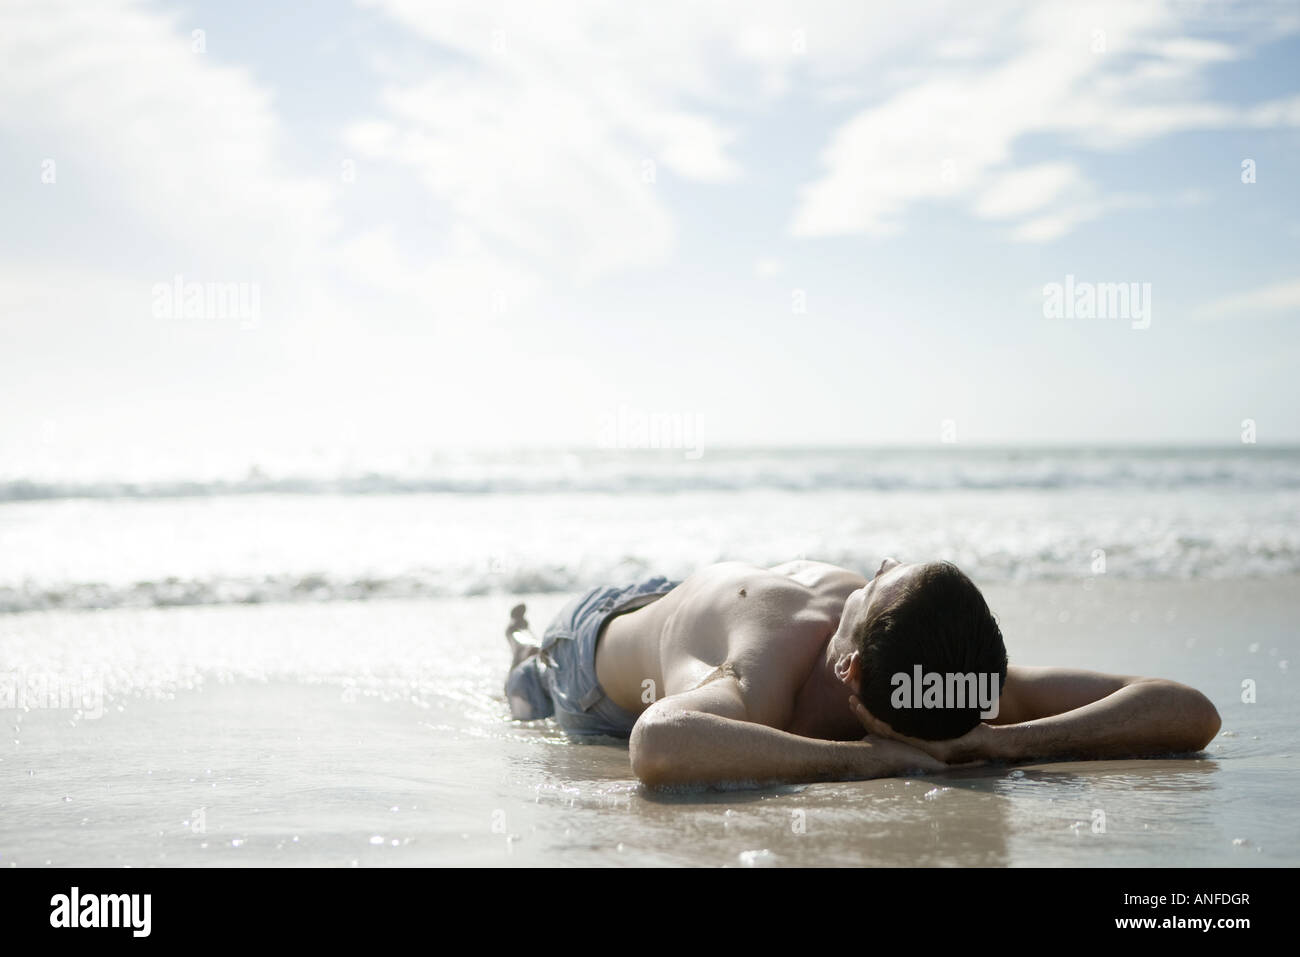 Young man lying on wet sand on beach, hands behind head - Stock Image